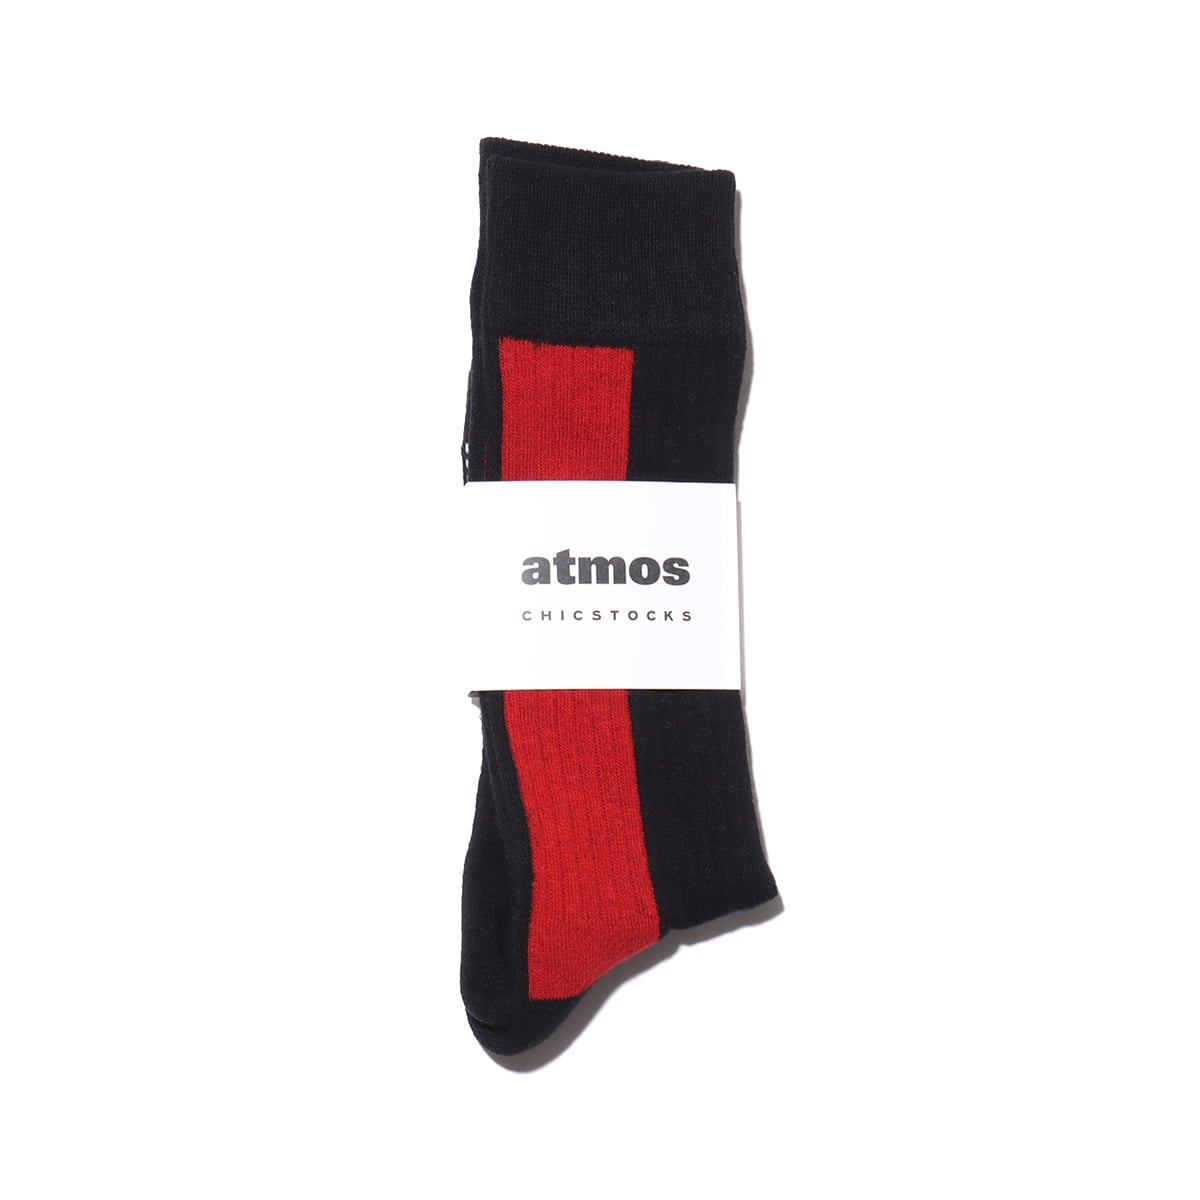 CHICSTOCKS x atmos 1985 RIB SOCKS BLACK/RED 21SP-I_photo_large